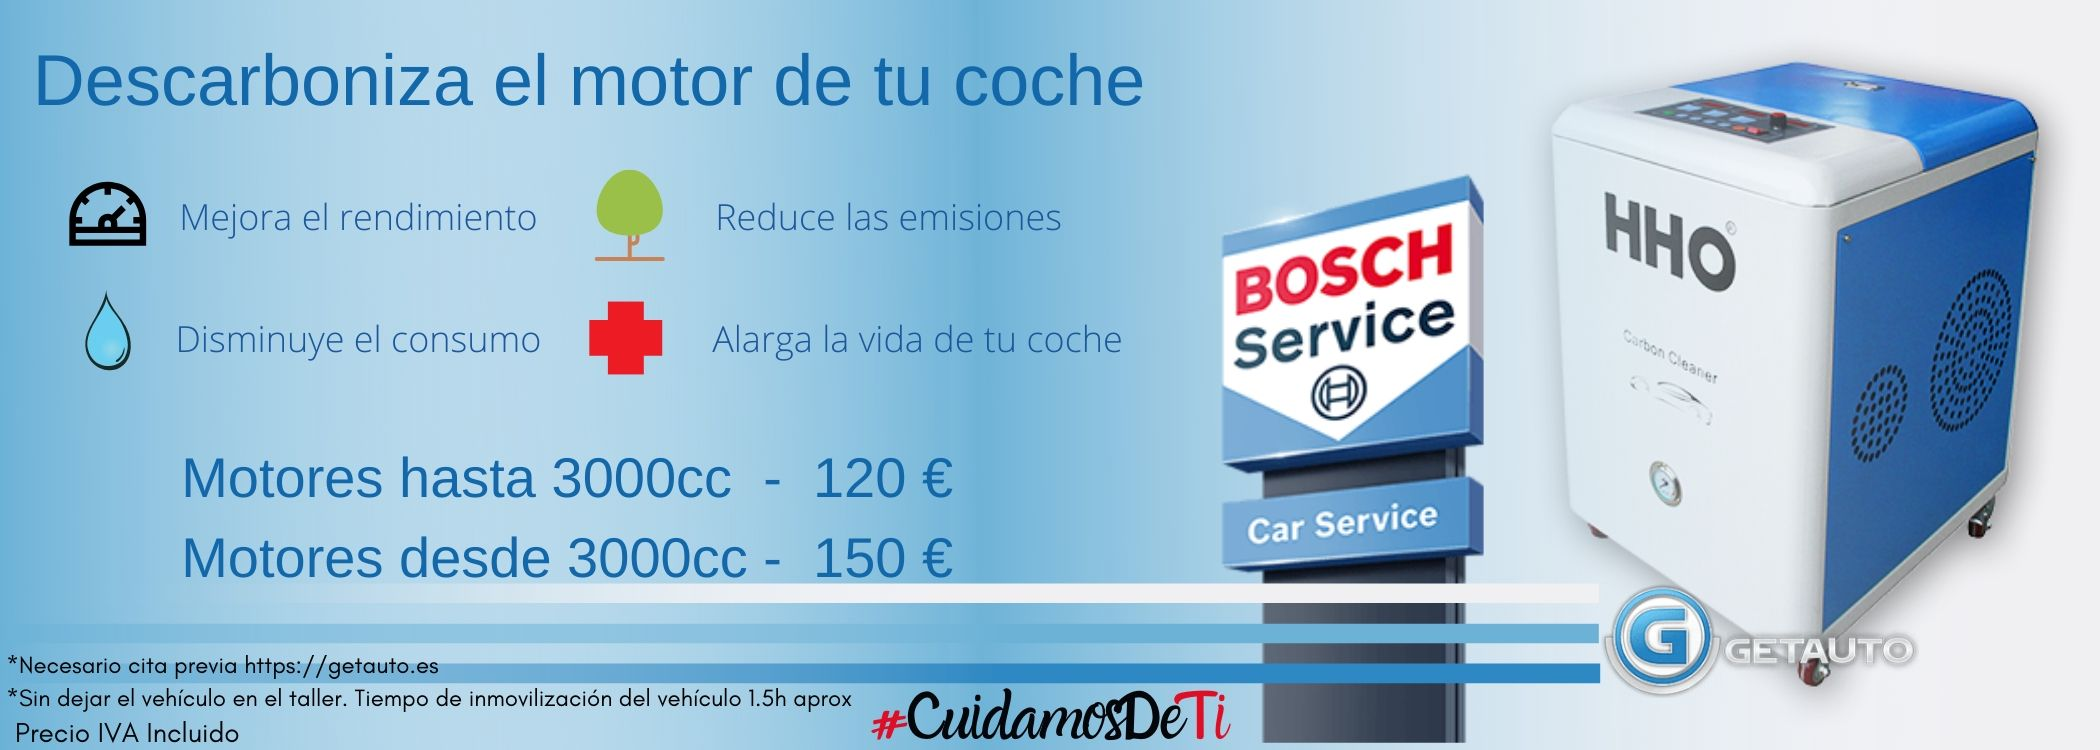 Descarbonizar motor Madrid